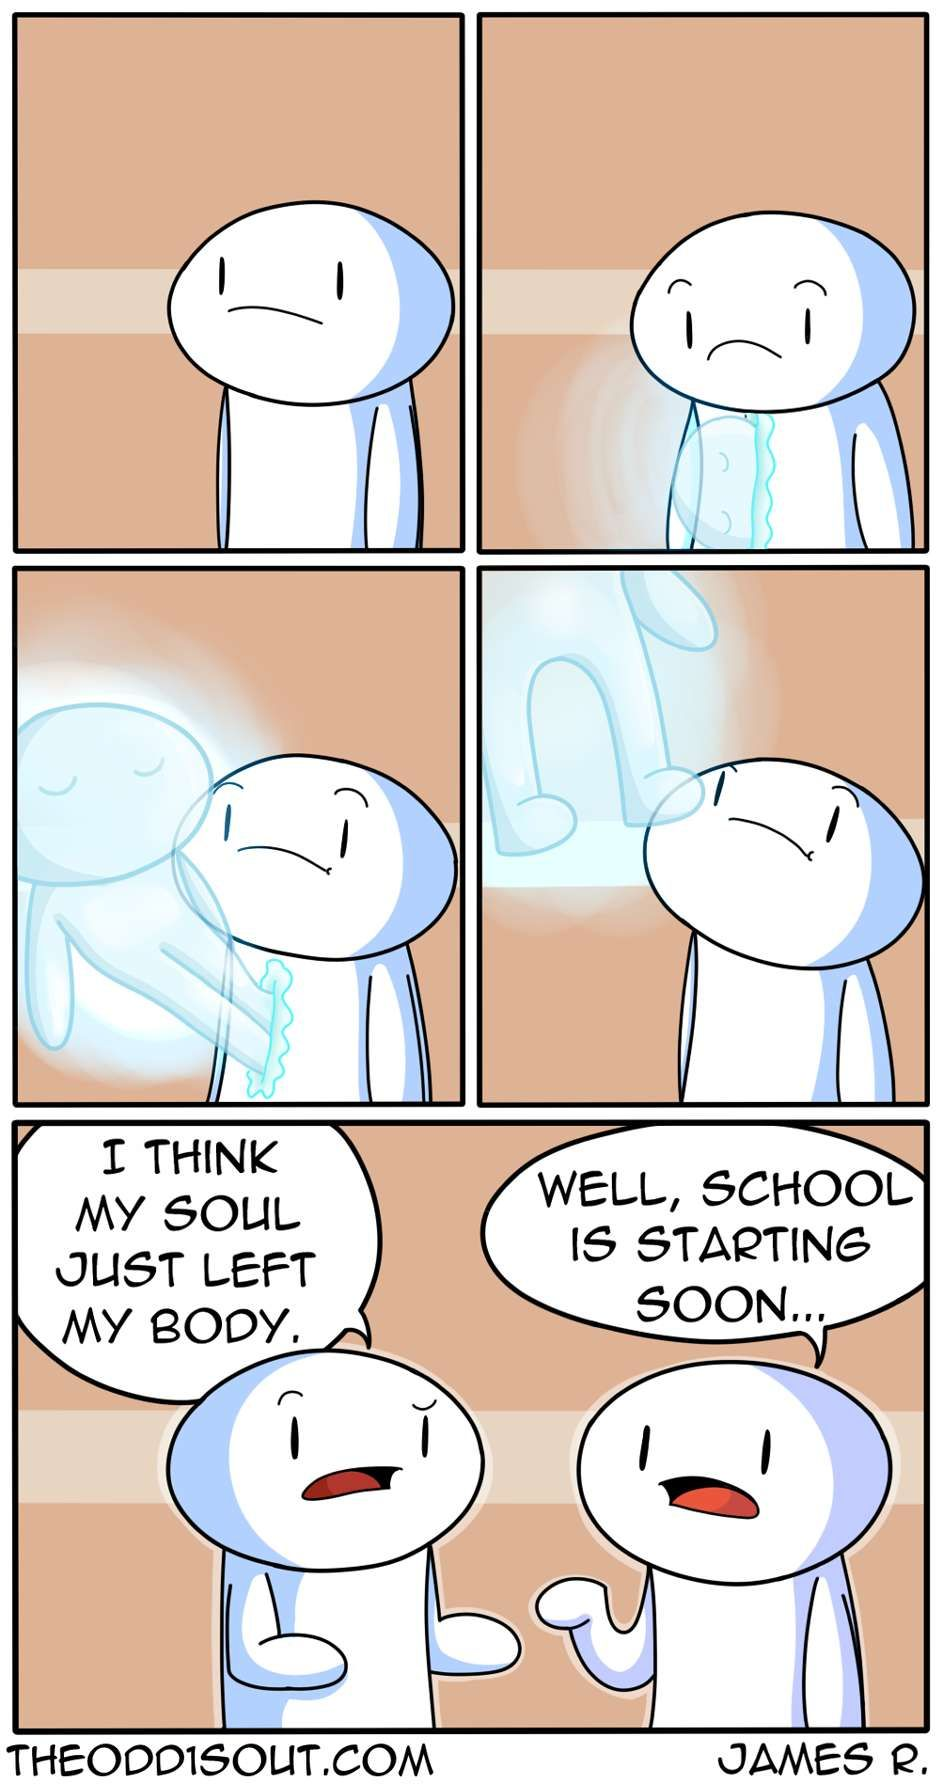 Funny Comic Strips For School : funny, comic, strips, school, Theodd1sout, School, Spirit, Tapastic, Comics, Image, Funny, Comic, Strips,, Comics,